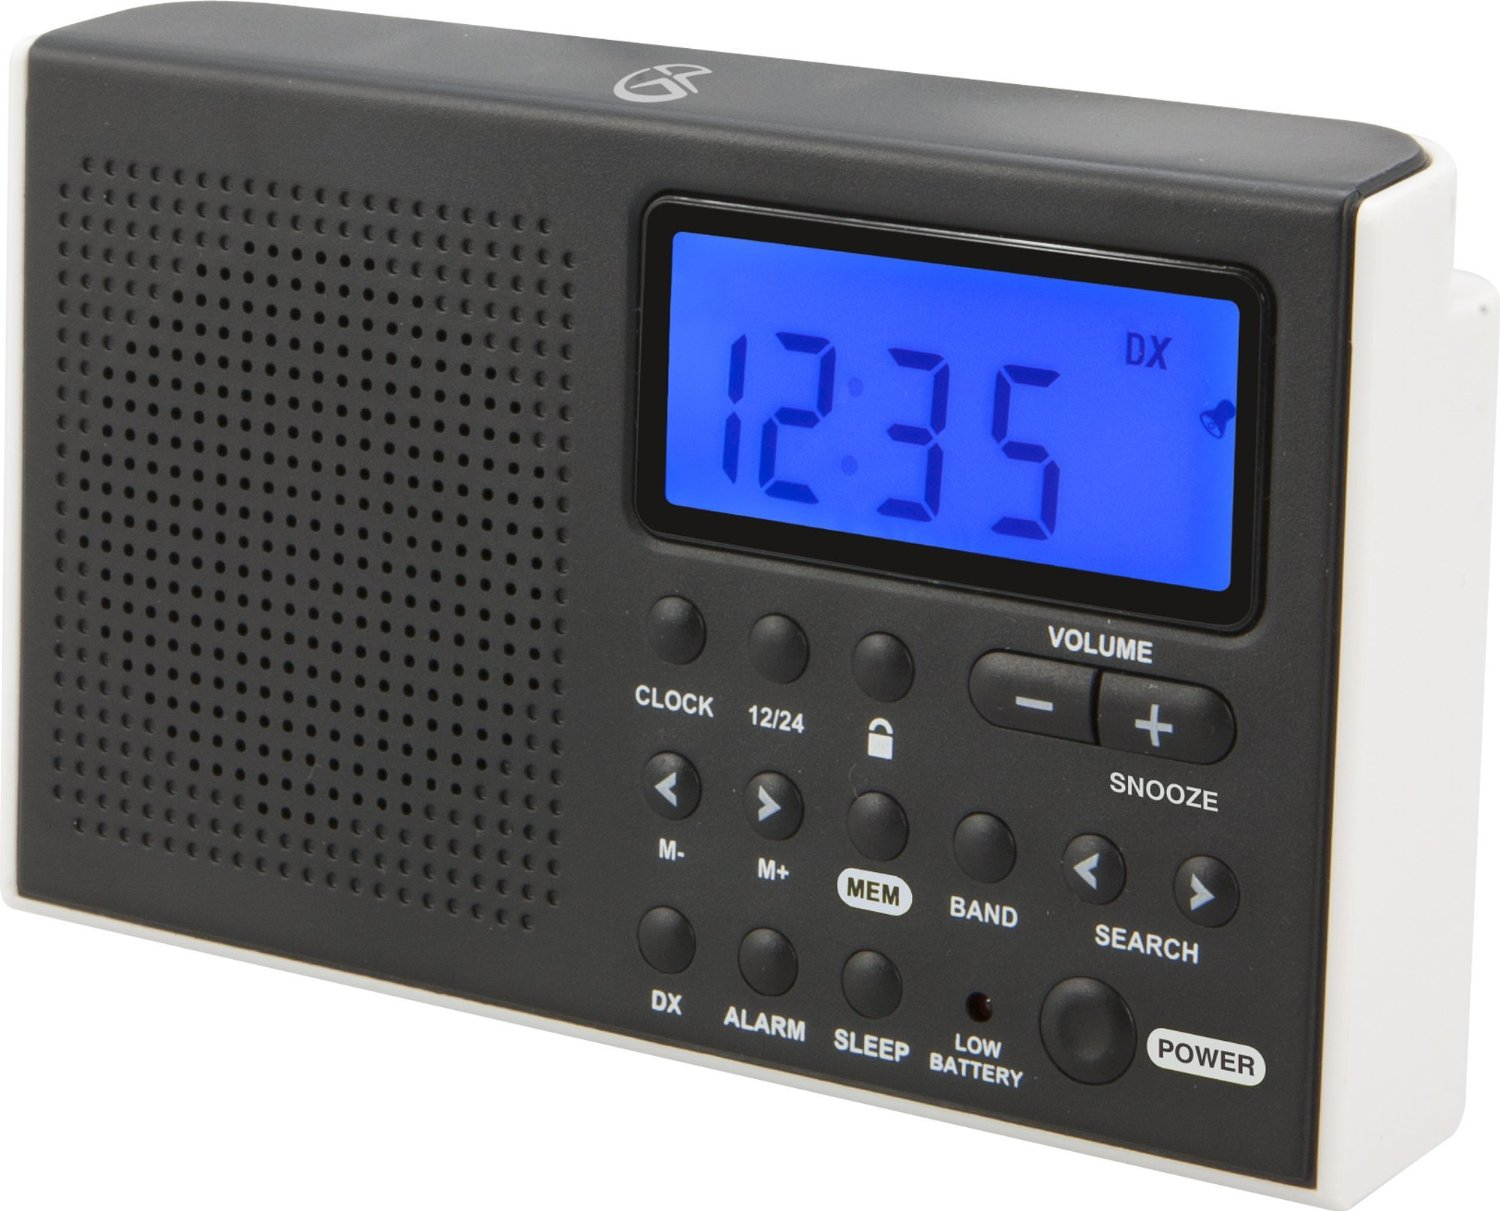 #87 BEAUTIFUL WHITE AM/FM/SW RADIOS WITH BLUE DISPLAY ONLY $17 WITH 2 DAY FREE SHIPPING ON AMAZON PRIME